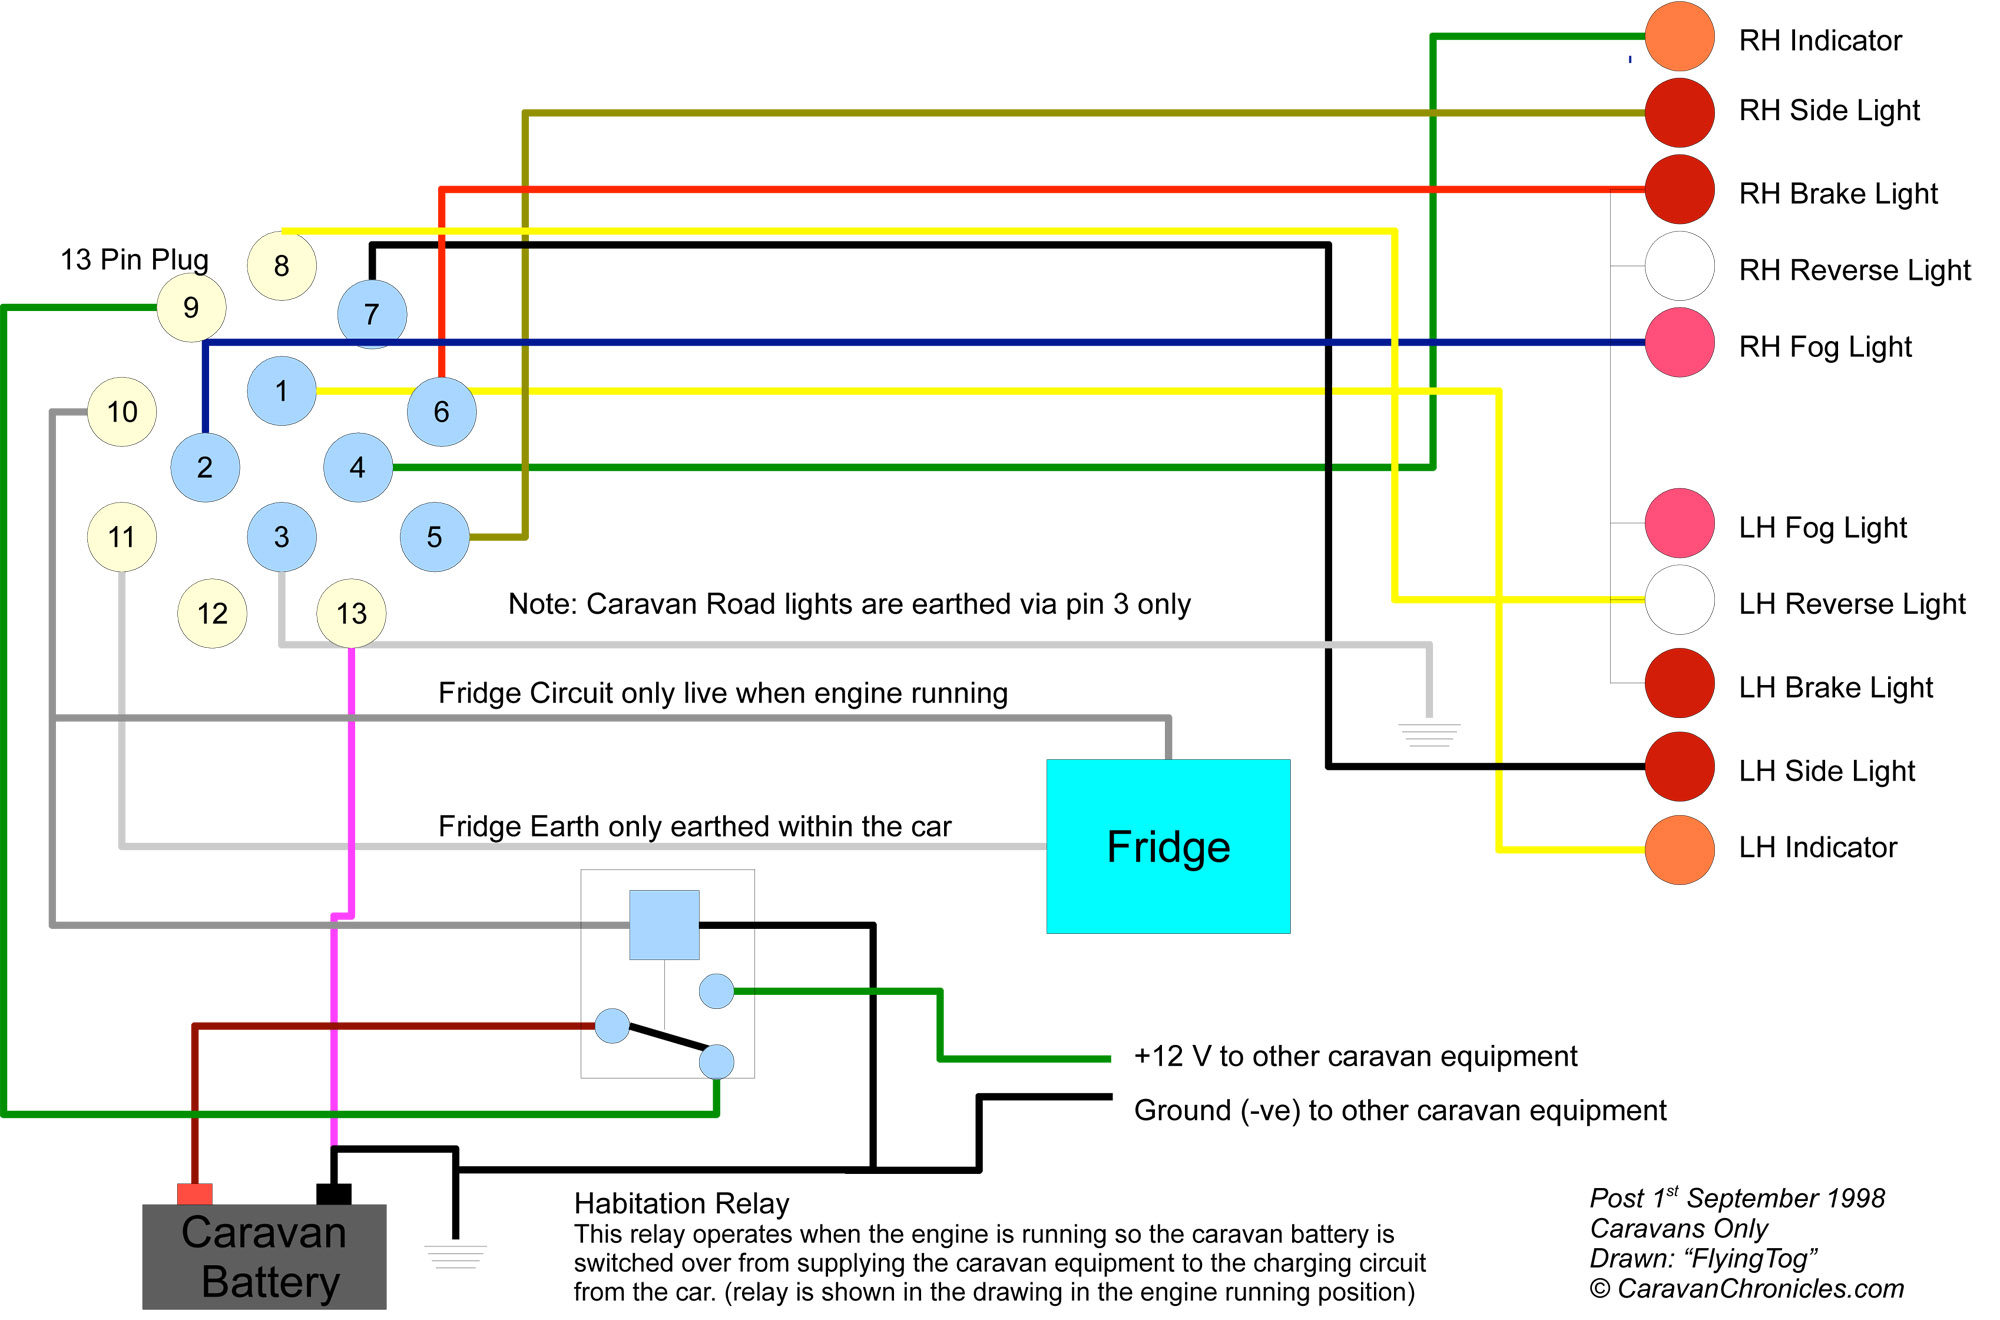 Caravan Mains Hook Up Wiring Diagram Great Installation Of For A Trailer Car Simple Diagrams Rh 30 Studio011 De Automotive Light Switch